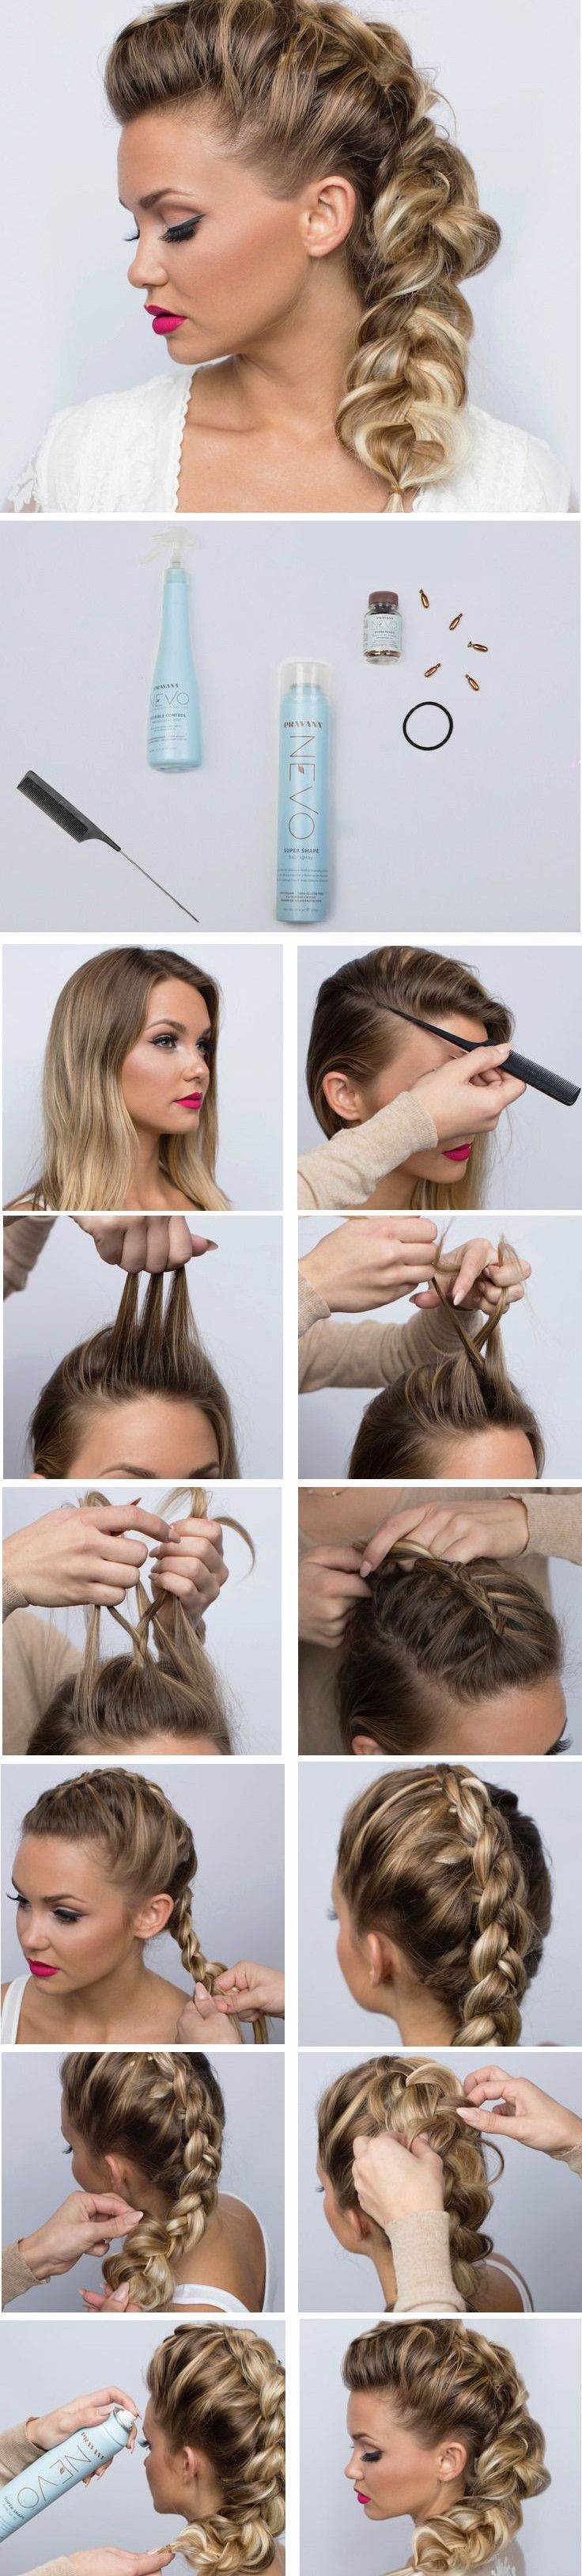 800 best Hairstyle images by Nefeli Pap on Pinterest